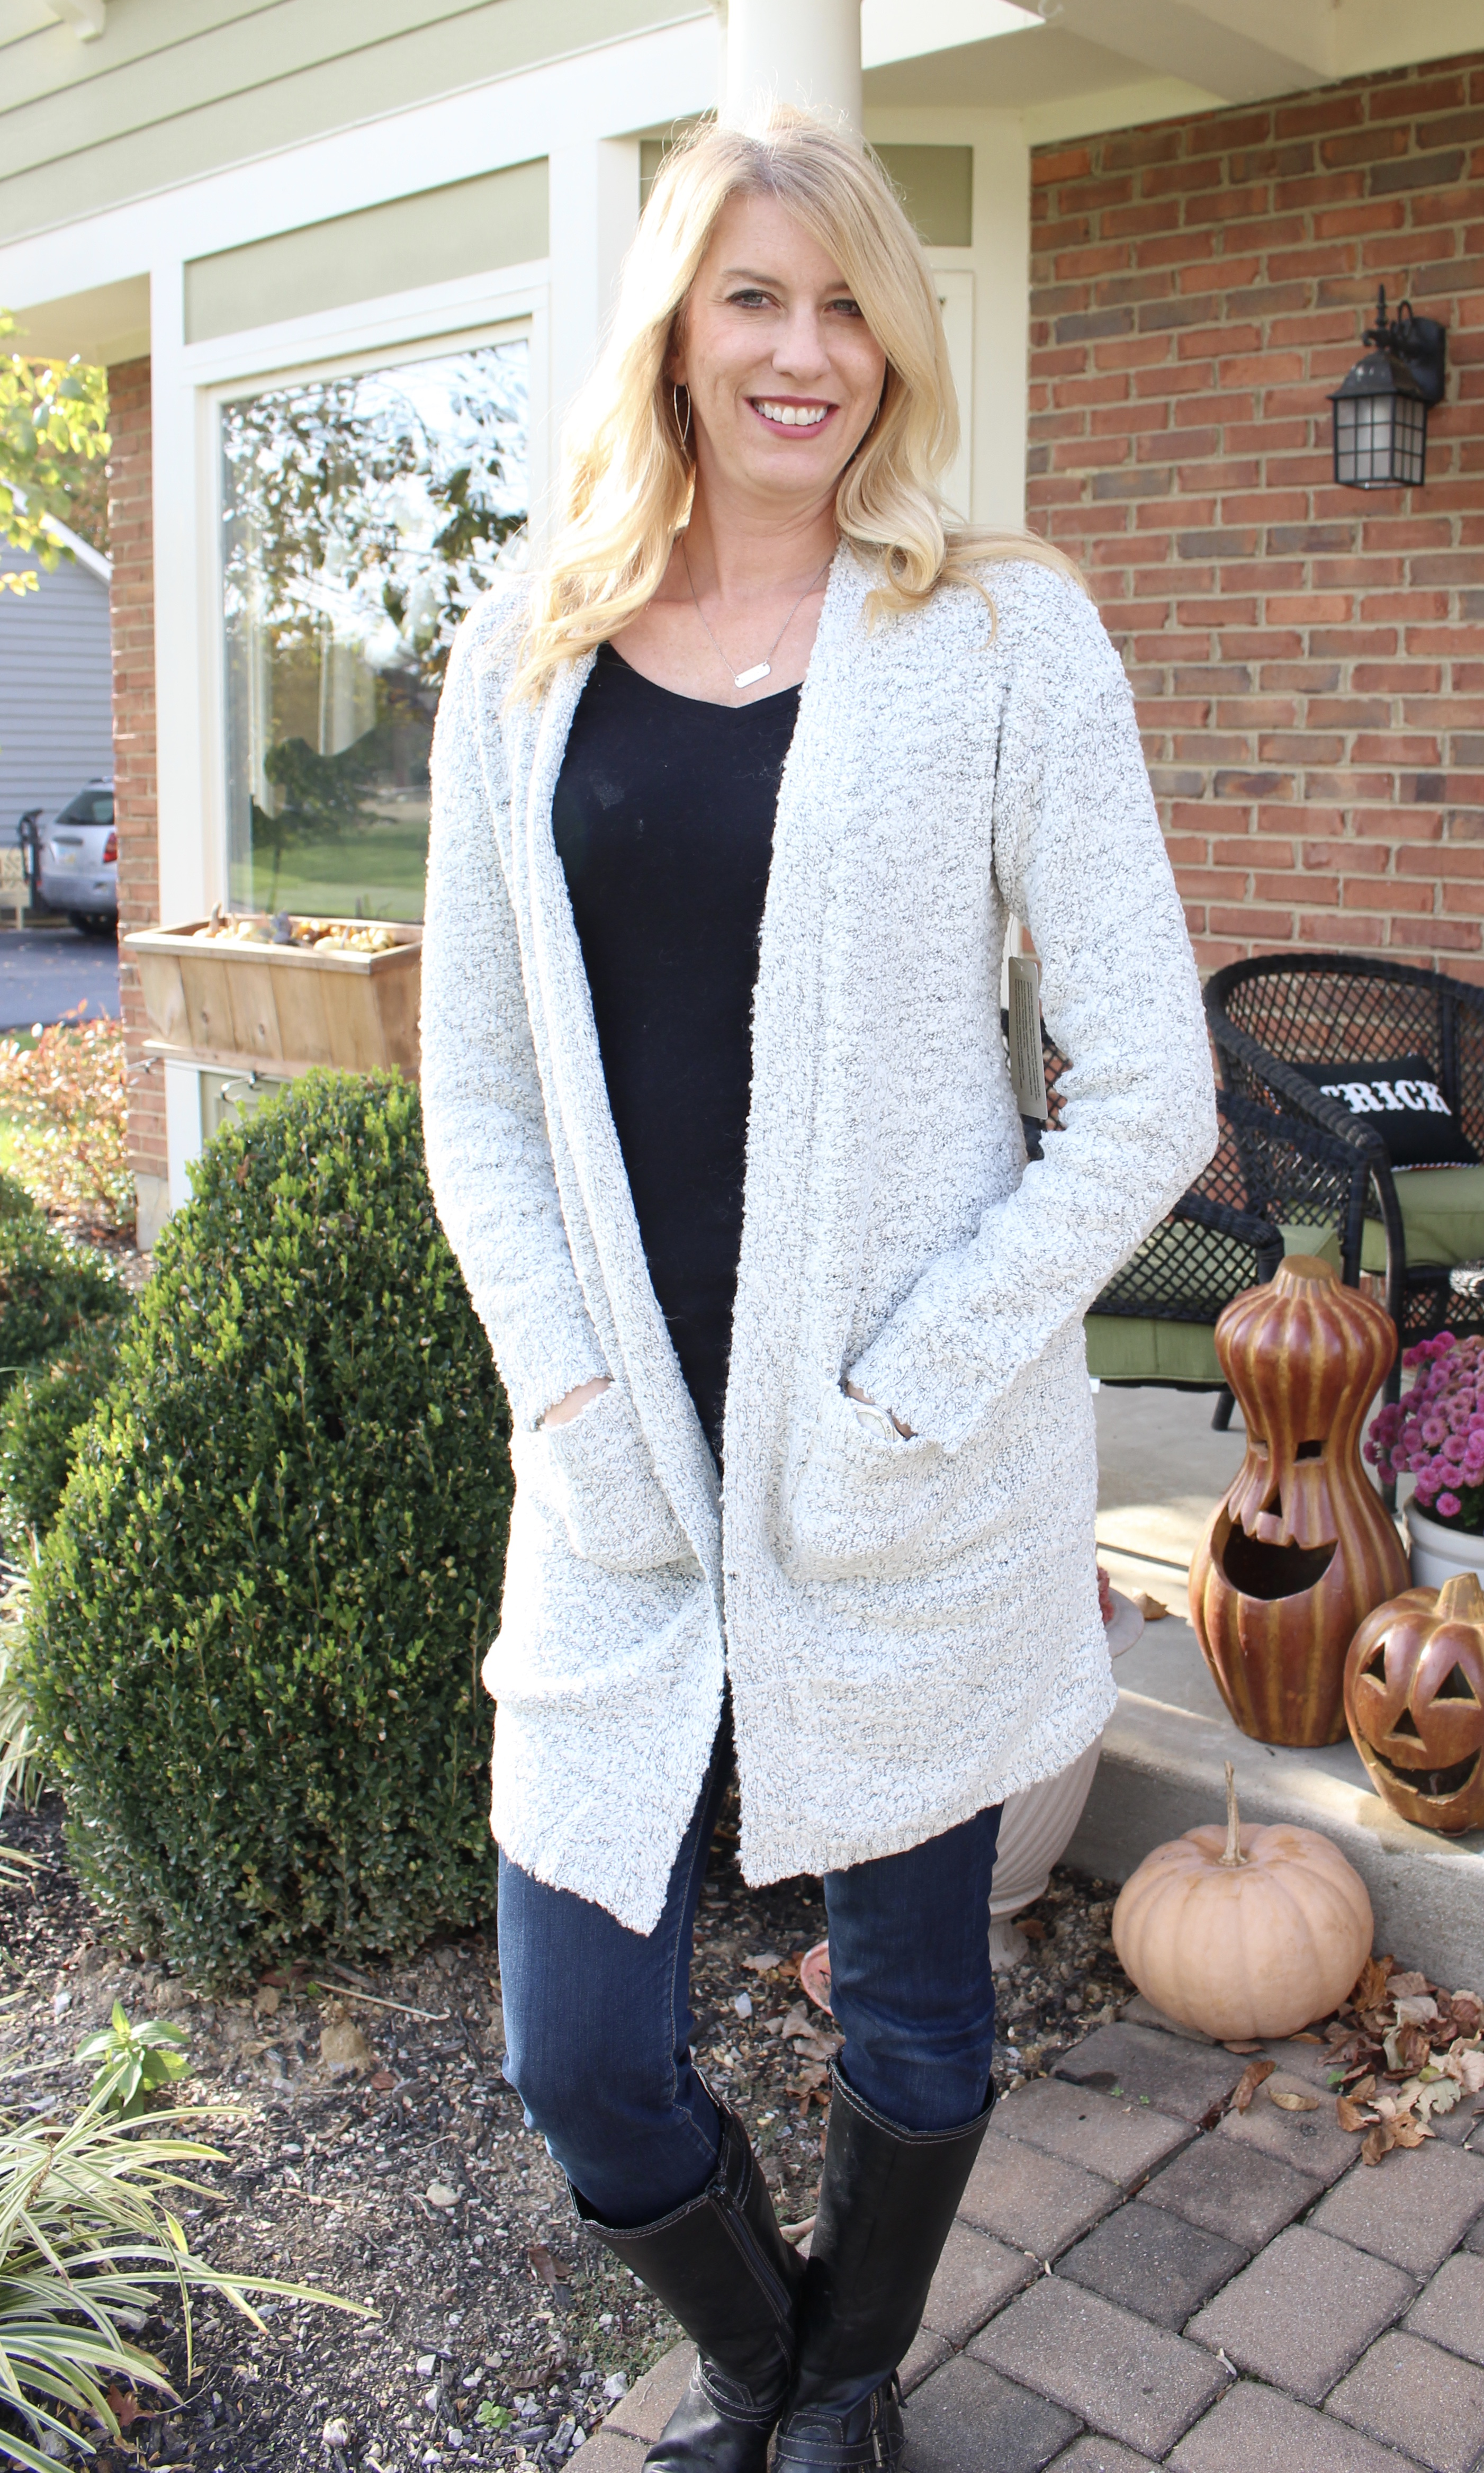 Stitch Fix- cardigan sweater- fall and winter fashion- women's fashion- wardrobe- personal styling box- monthly subscription box- casual look- style- outfits